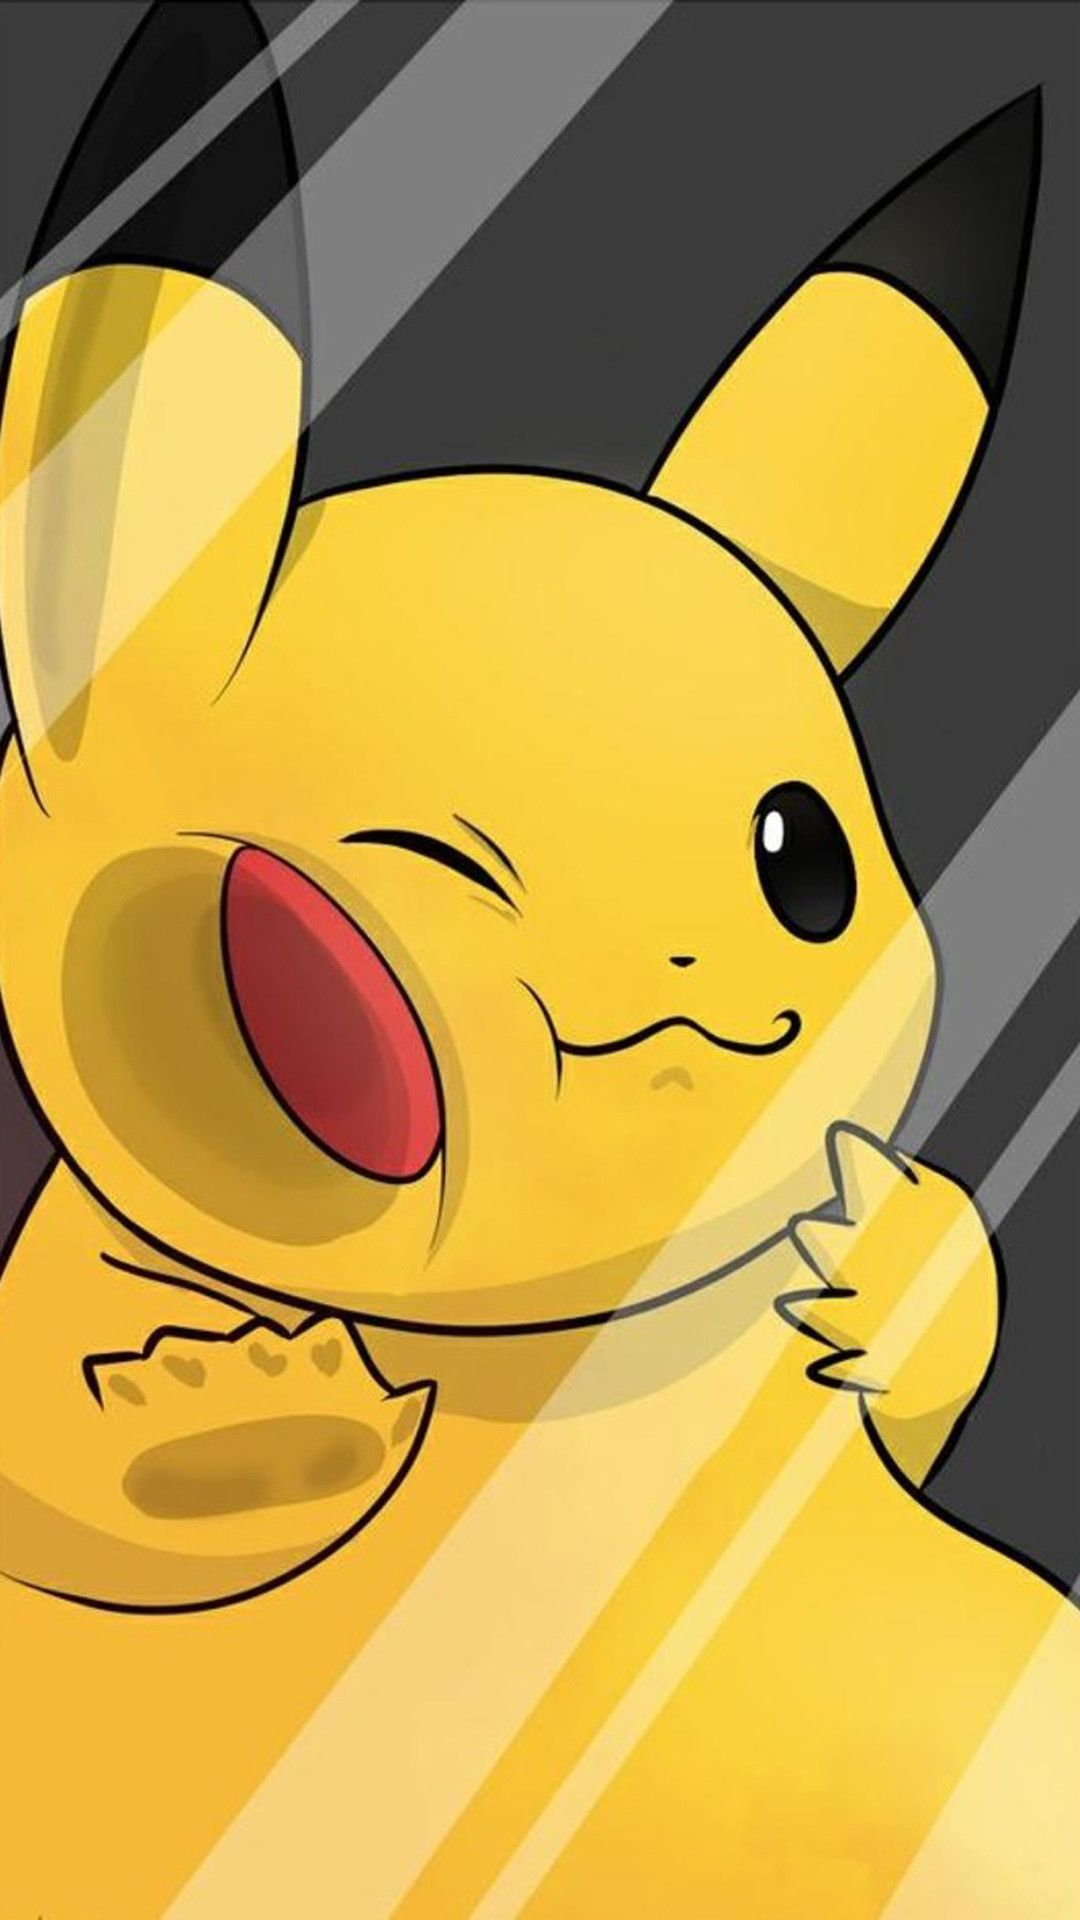 Pikachu Phone Wallpapers - Top Free Pikachu Phone Backgrounds